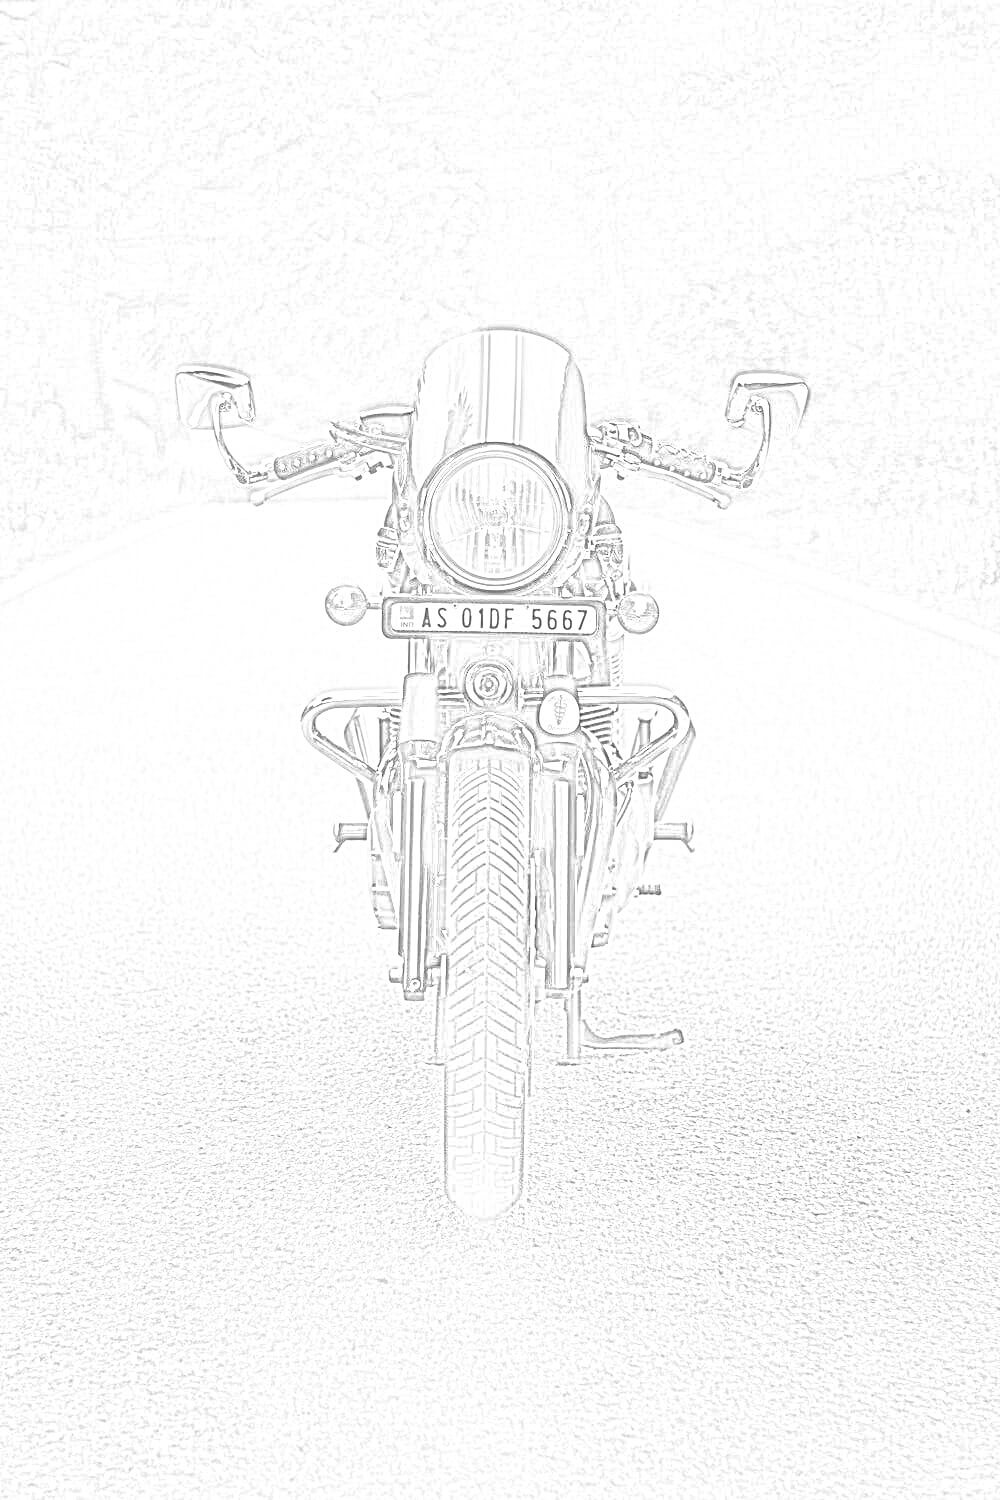 Motorcycle on the Road Coloring Page